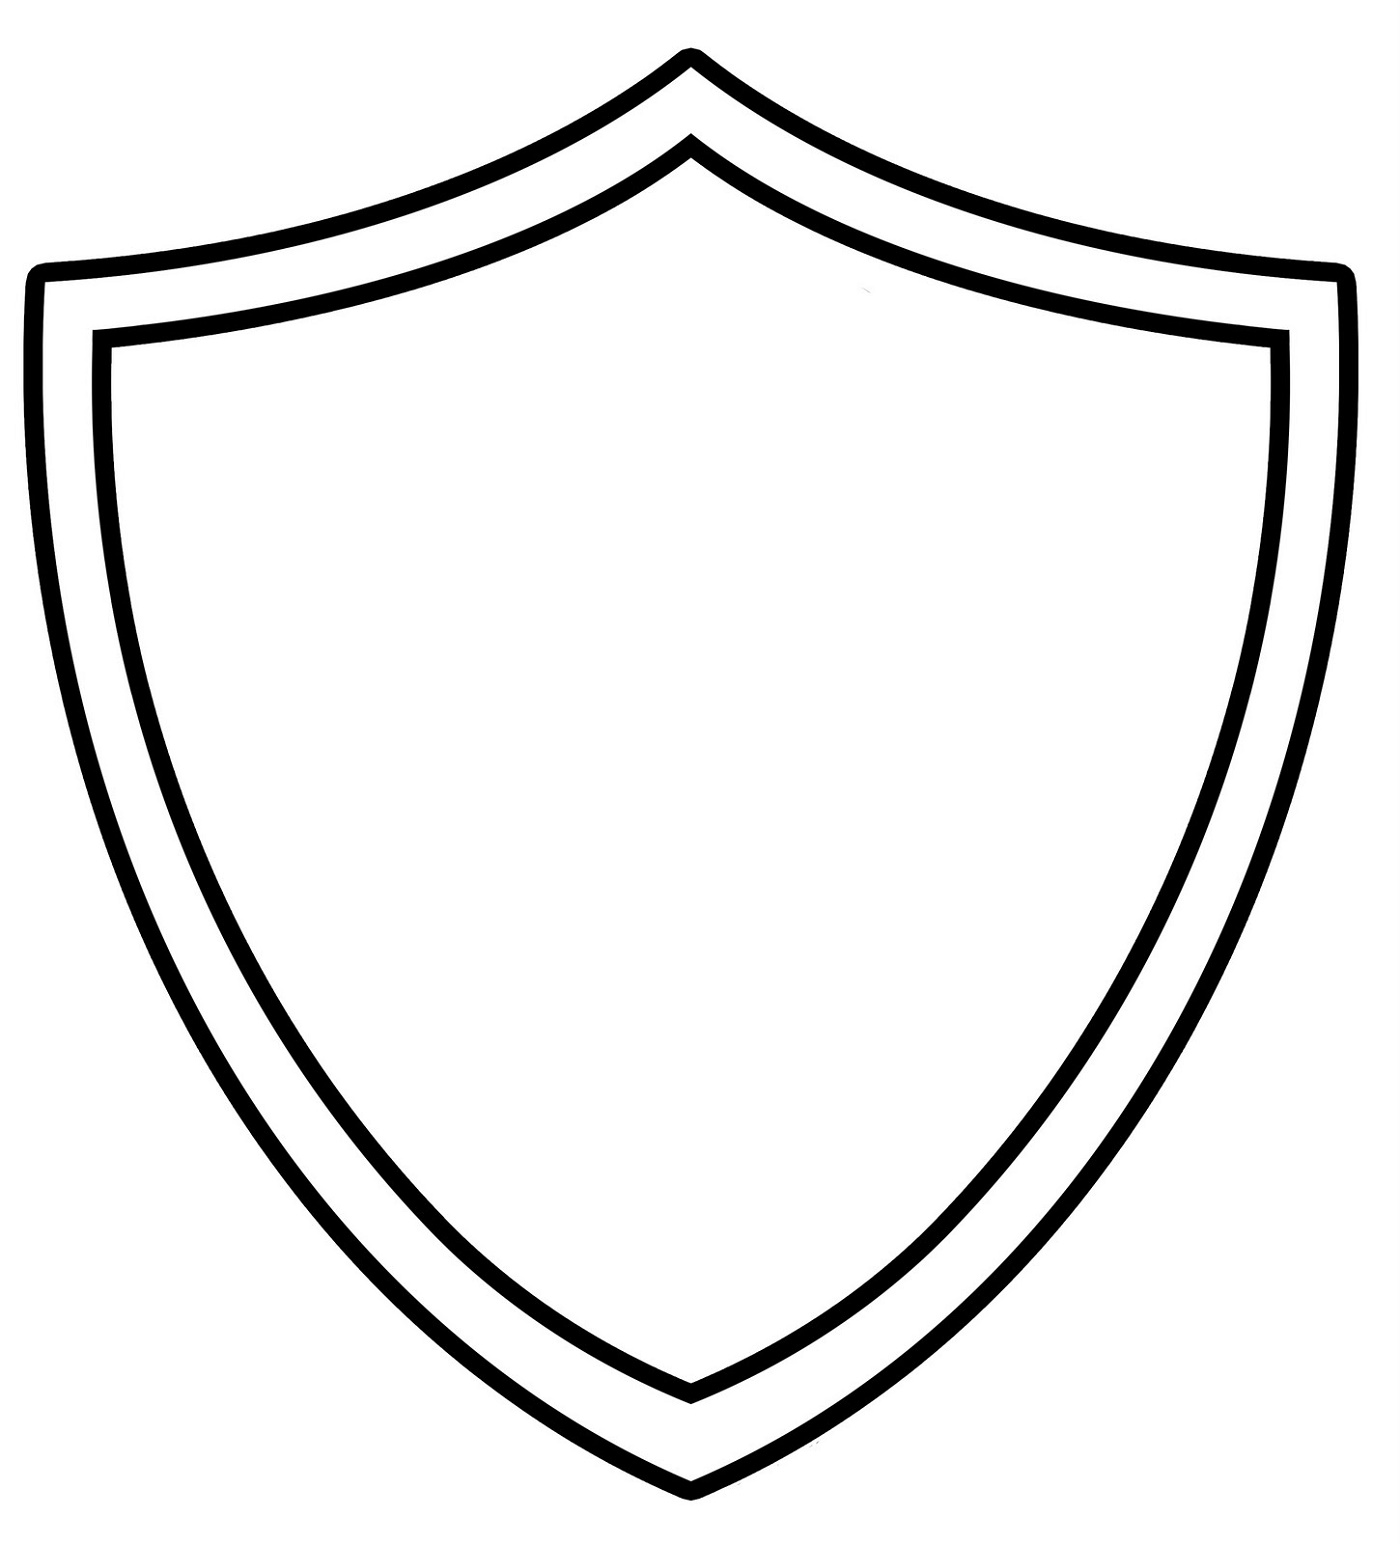 Ctr Shield Coloring Page Outline